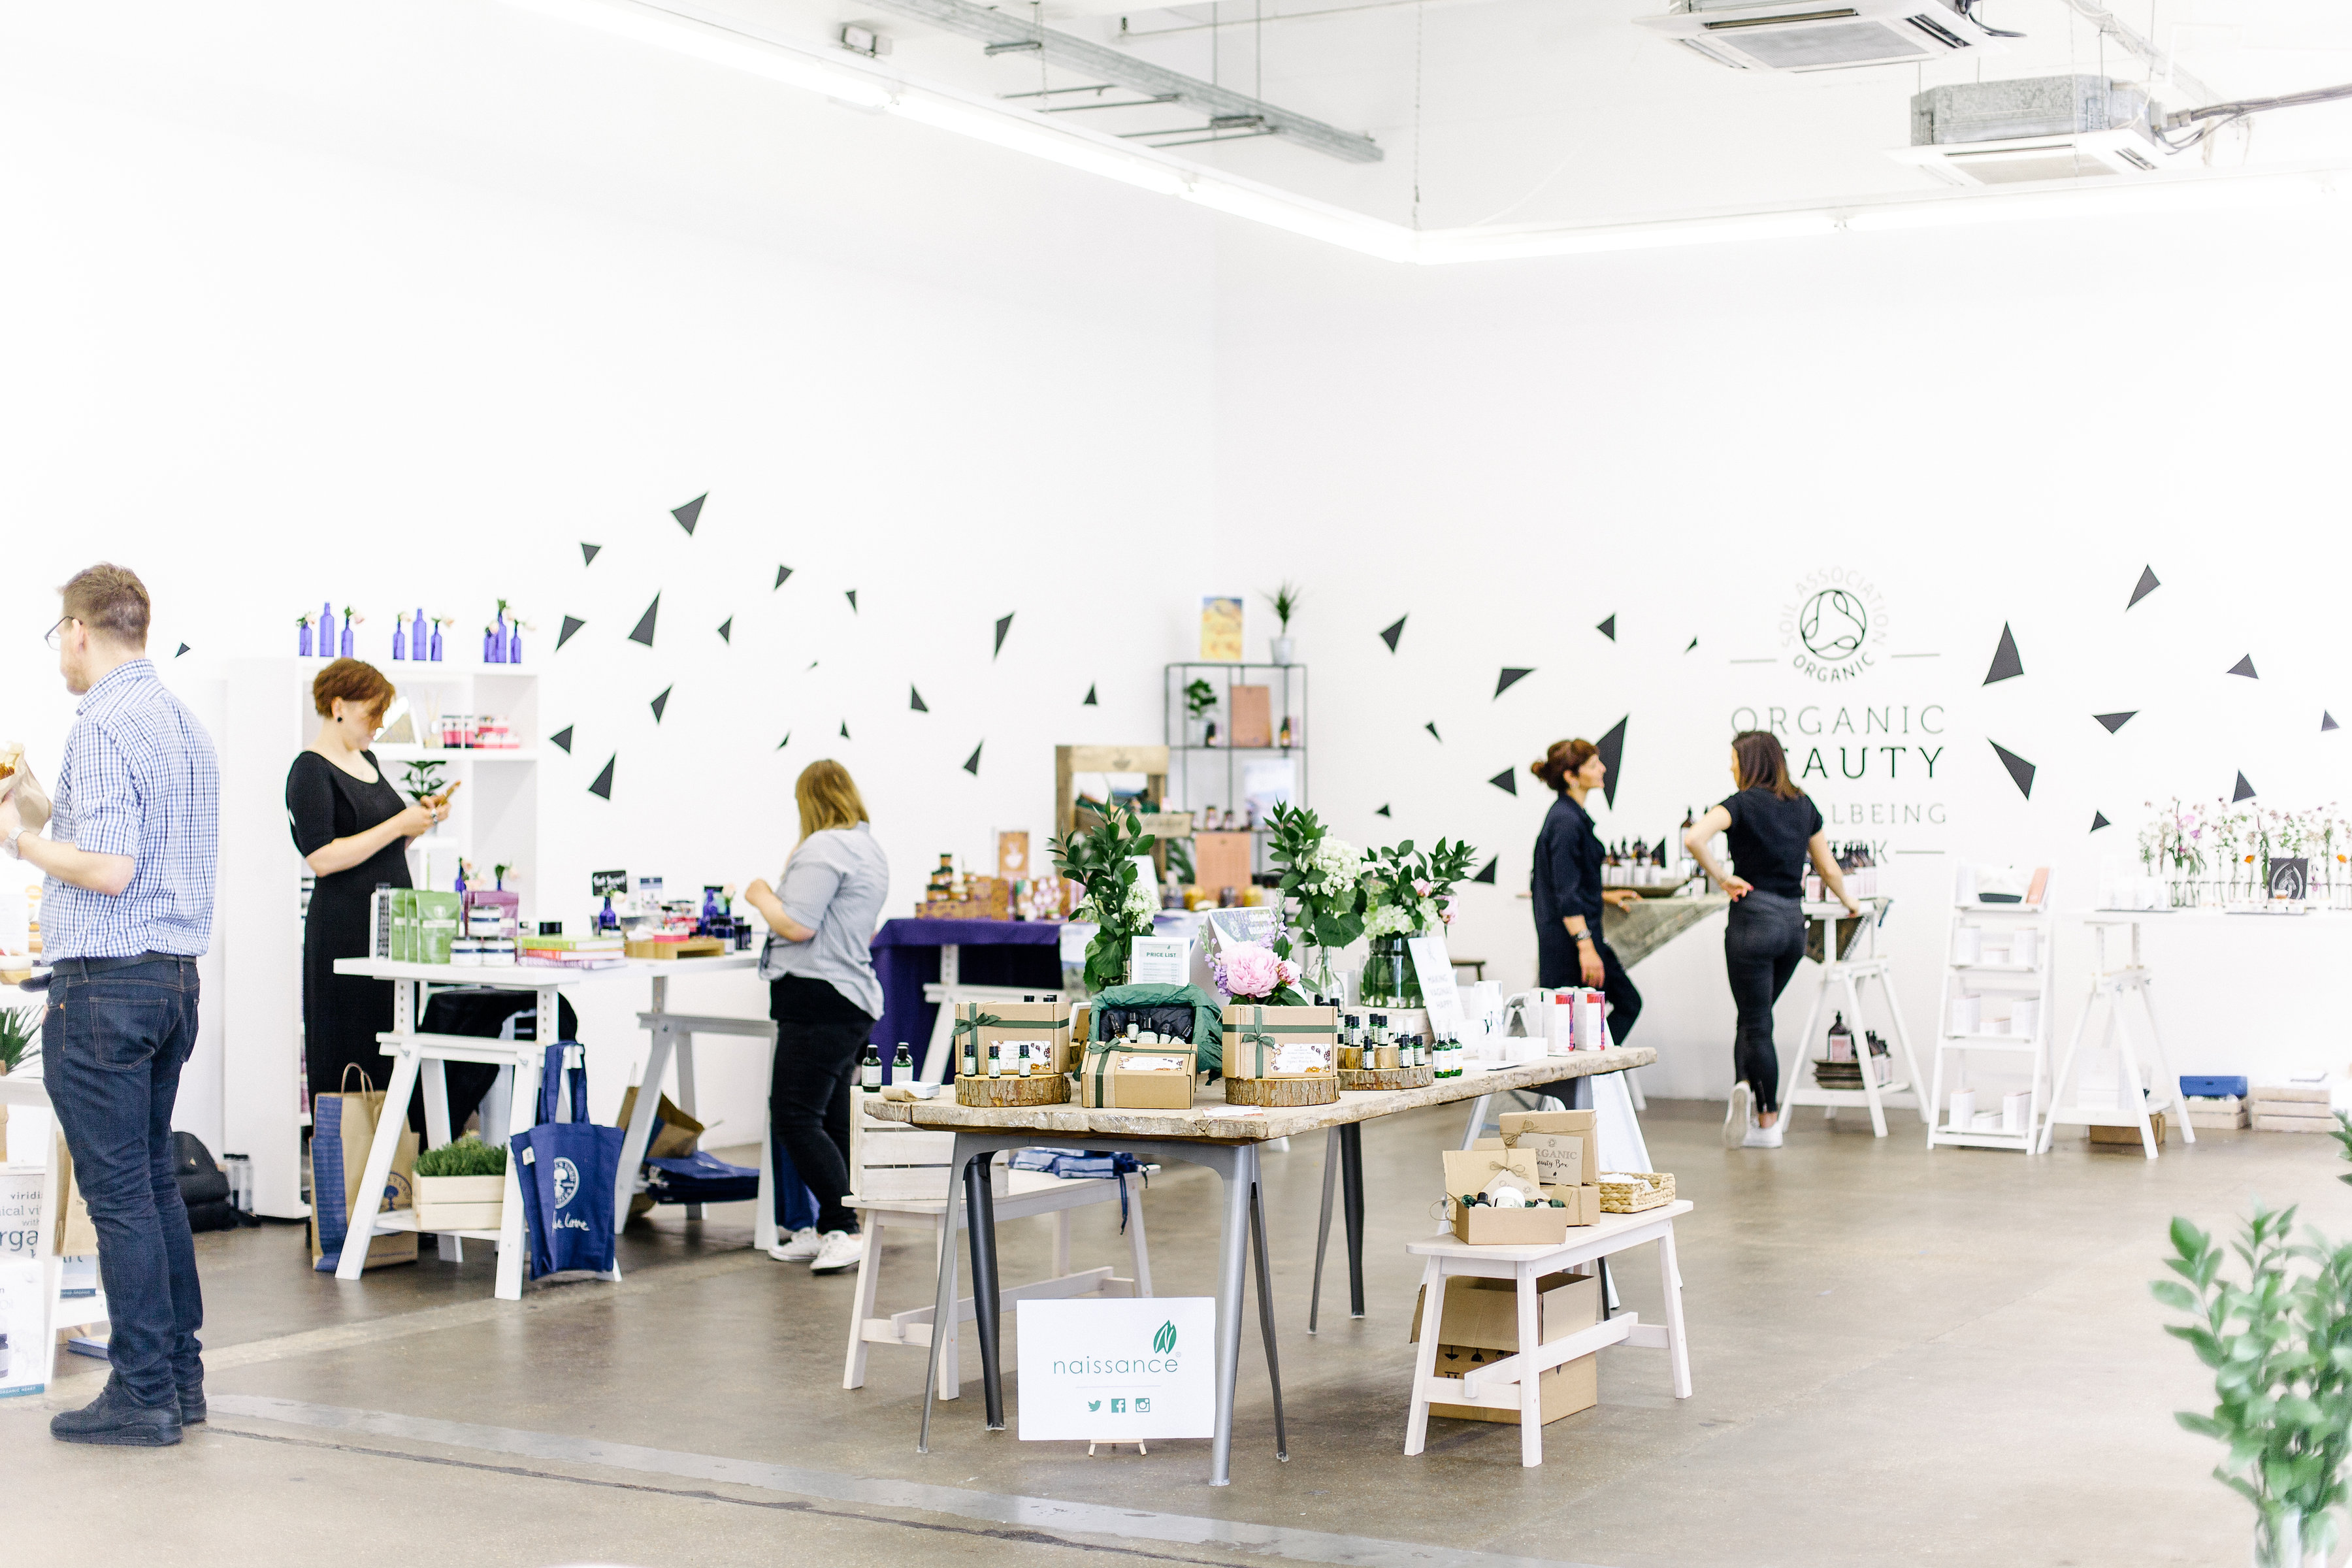 Organic Beauty & Wellbeing Week 2017 pop-up shop